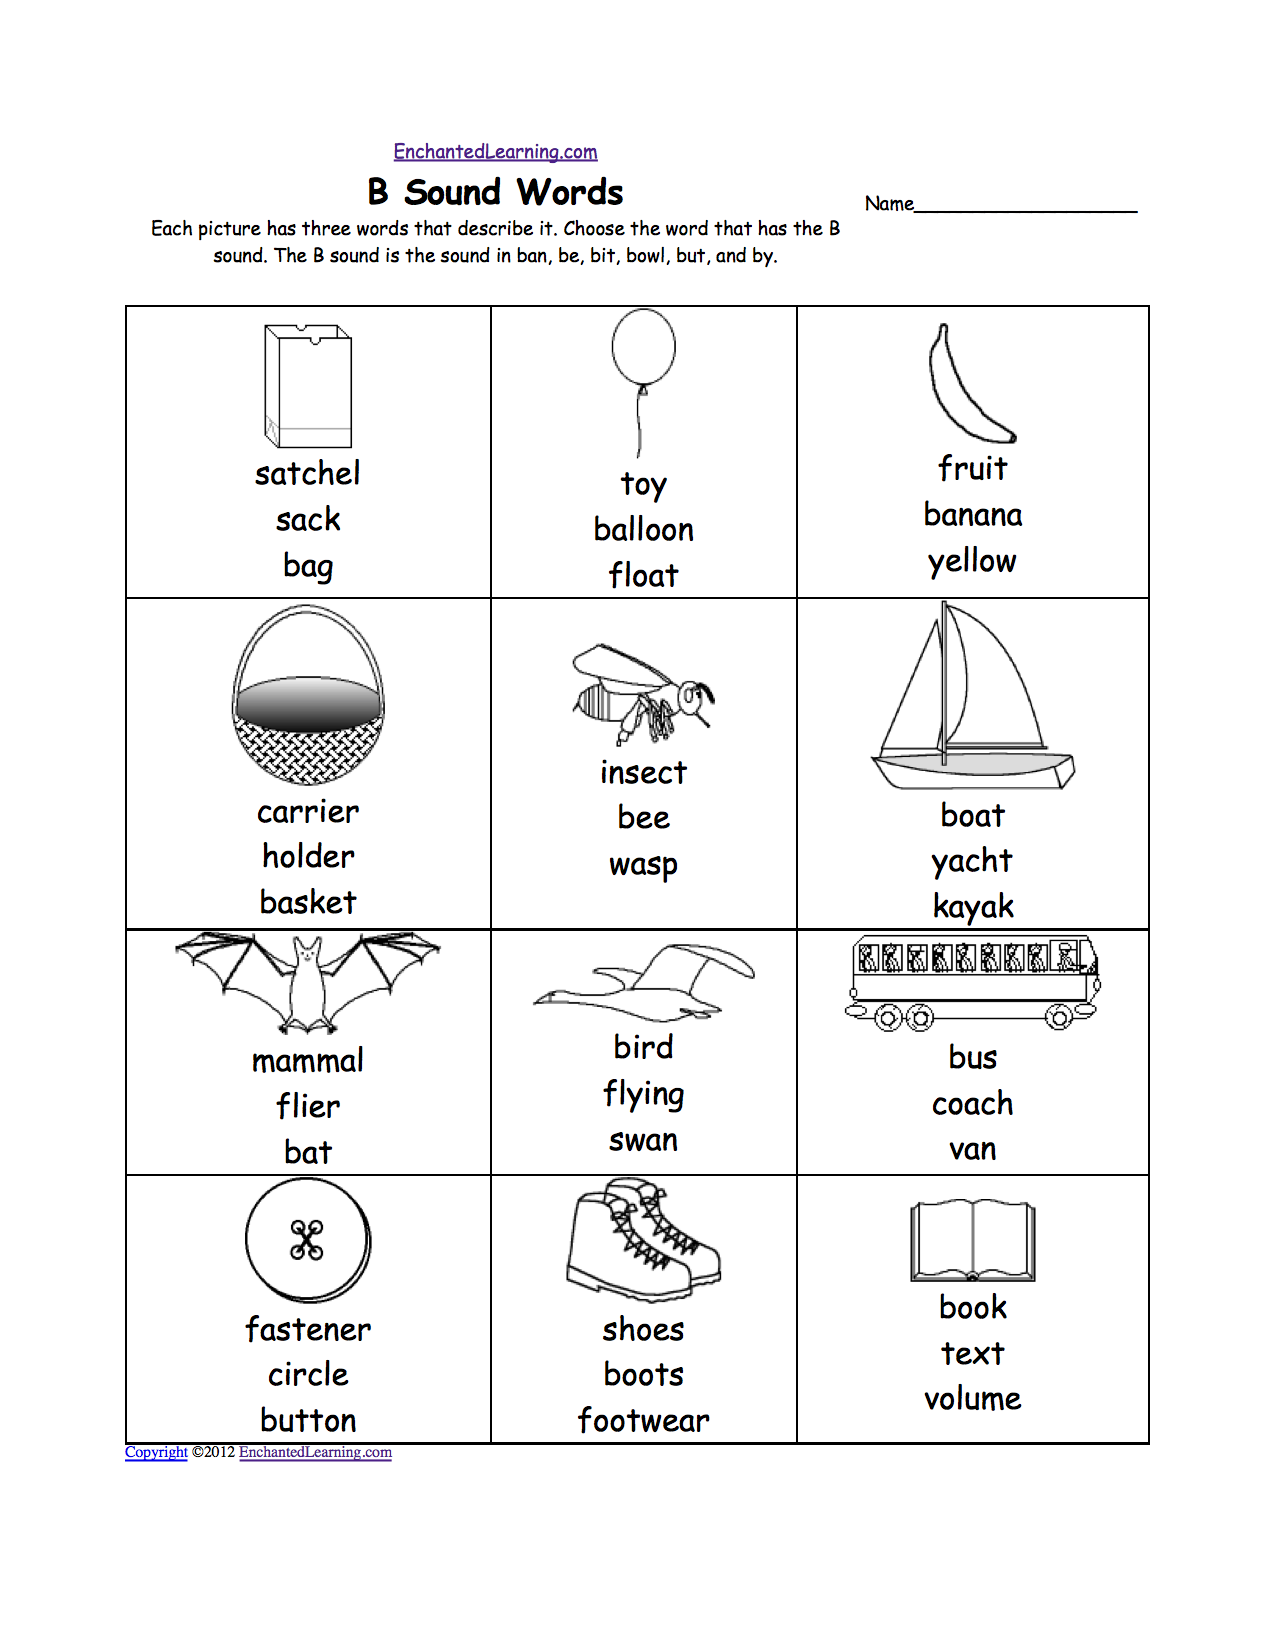 Weirdmailus  Marvellous Phonics Worksheets Multiple Choice Worksheets To Print  With Engaging Quotbquot Sound Phonics Worksheet Multiple Choice Each Picture Has Three Words That Describe It Choose The Word That Has A Quotbquot Sound The Quotbquot Sound Is The Sound  With Astounding Dna Replication Worksheet Key Also Biogeochemical Cycles Worksheet Answers In Addition Th Grade Geometry Worksheets And Water Cycle Worksheet Pdf As Well As Homonym Worksheets Additionally Abc Handwriting Worksheets From Enchantedlearningcom With Weirdmailus  Engaging Phonics Worksheets Multiple Choice Worksheets To Print  With Astounding Quotbquot Sound Phonics Worksheet Multiple Choice Each Picture Has Three Words That Describe It Choose The Word That Has A Quotbquot Sound The Quotbquot Sound Is The Sound  And Marvellous Dna Replication Worksheet Key Also Biogeochemical Cycles Worksheet Answers In Addition Th Grade Geometry Worksheets From Enchantedlearningcom